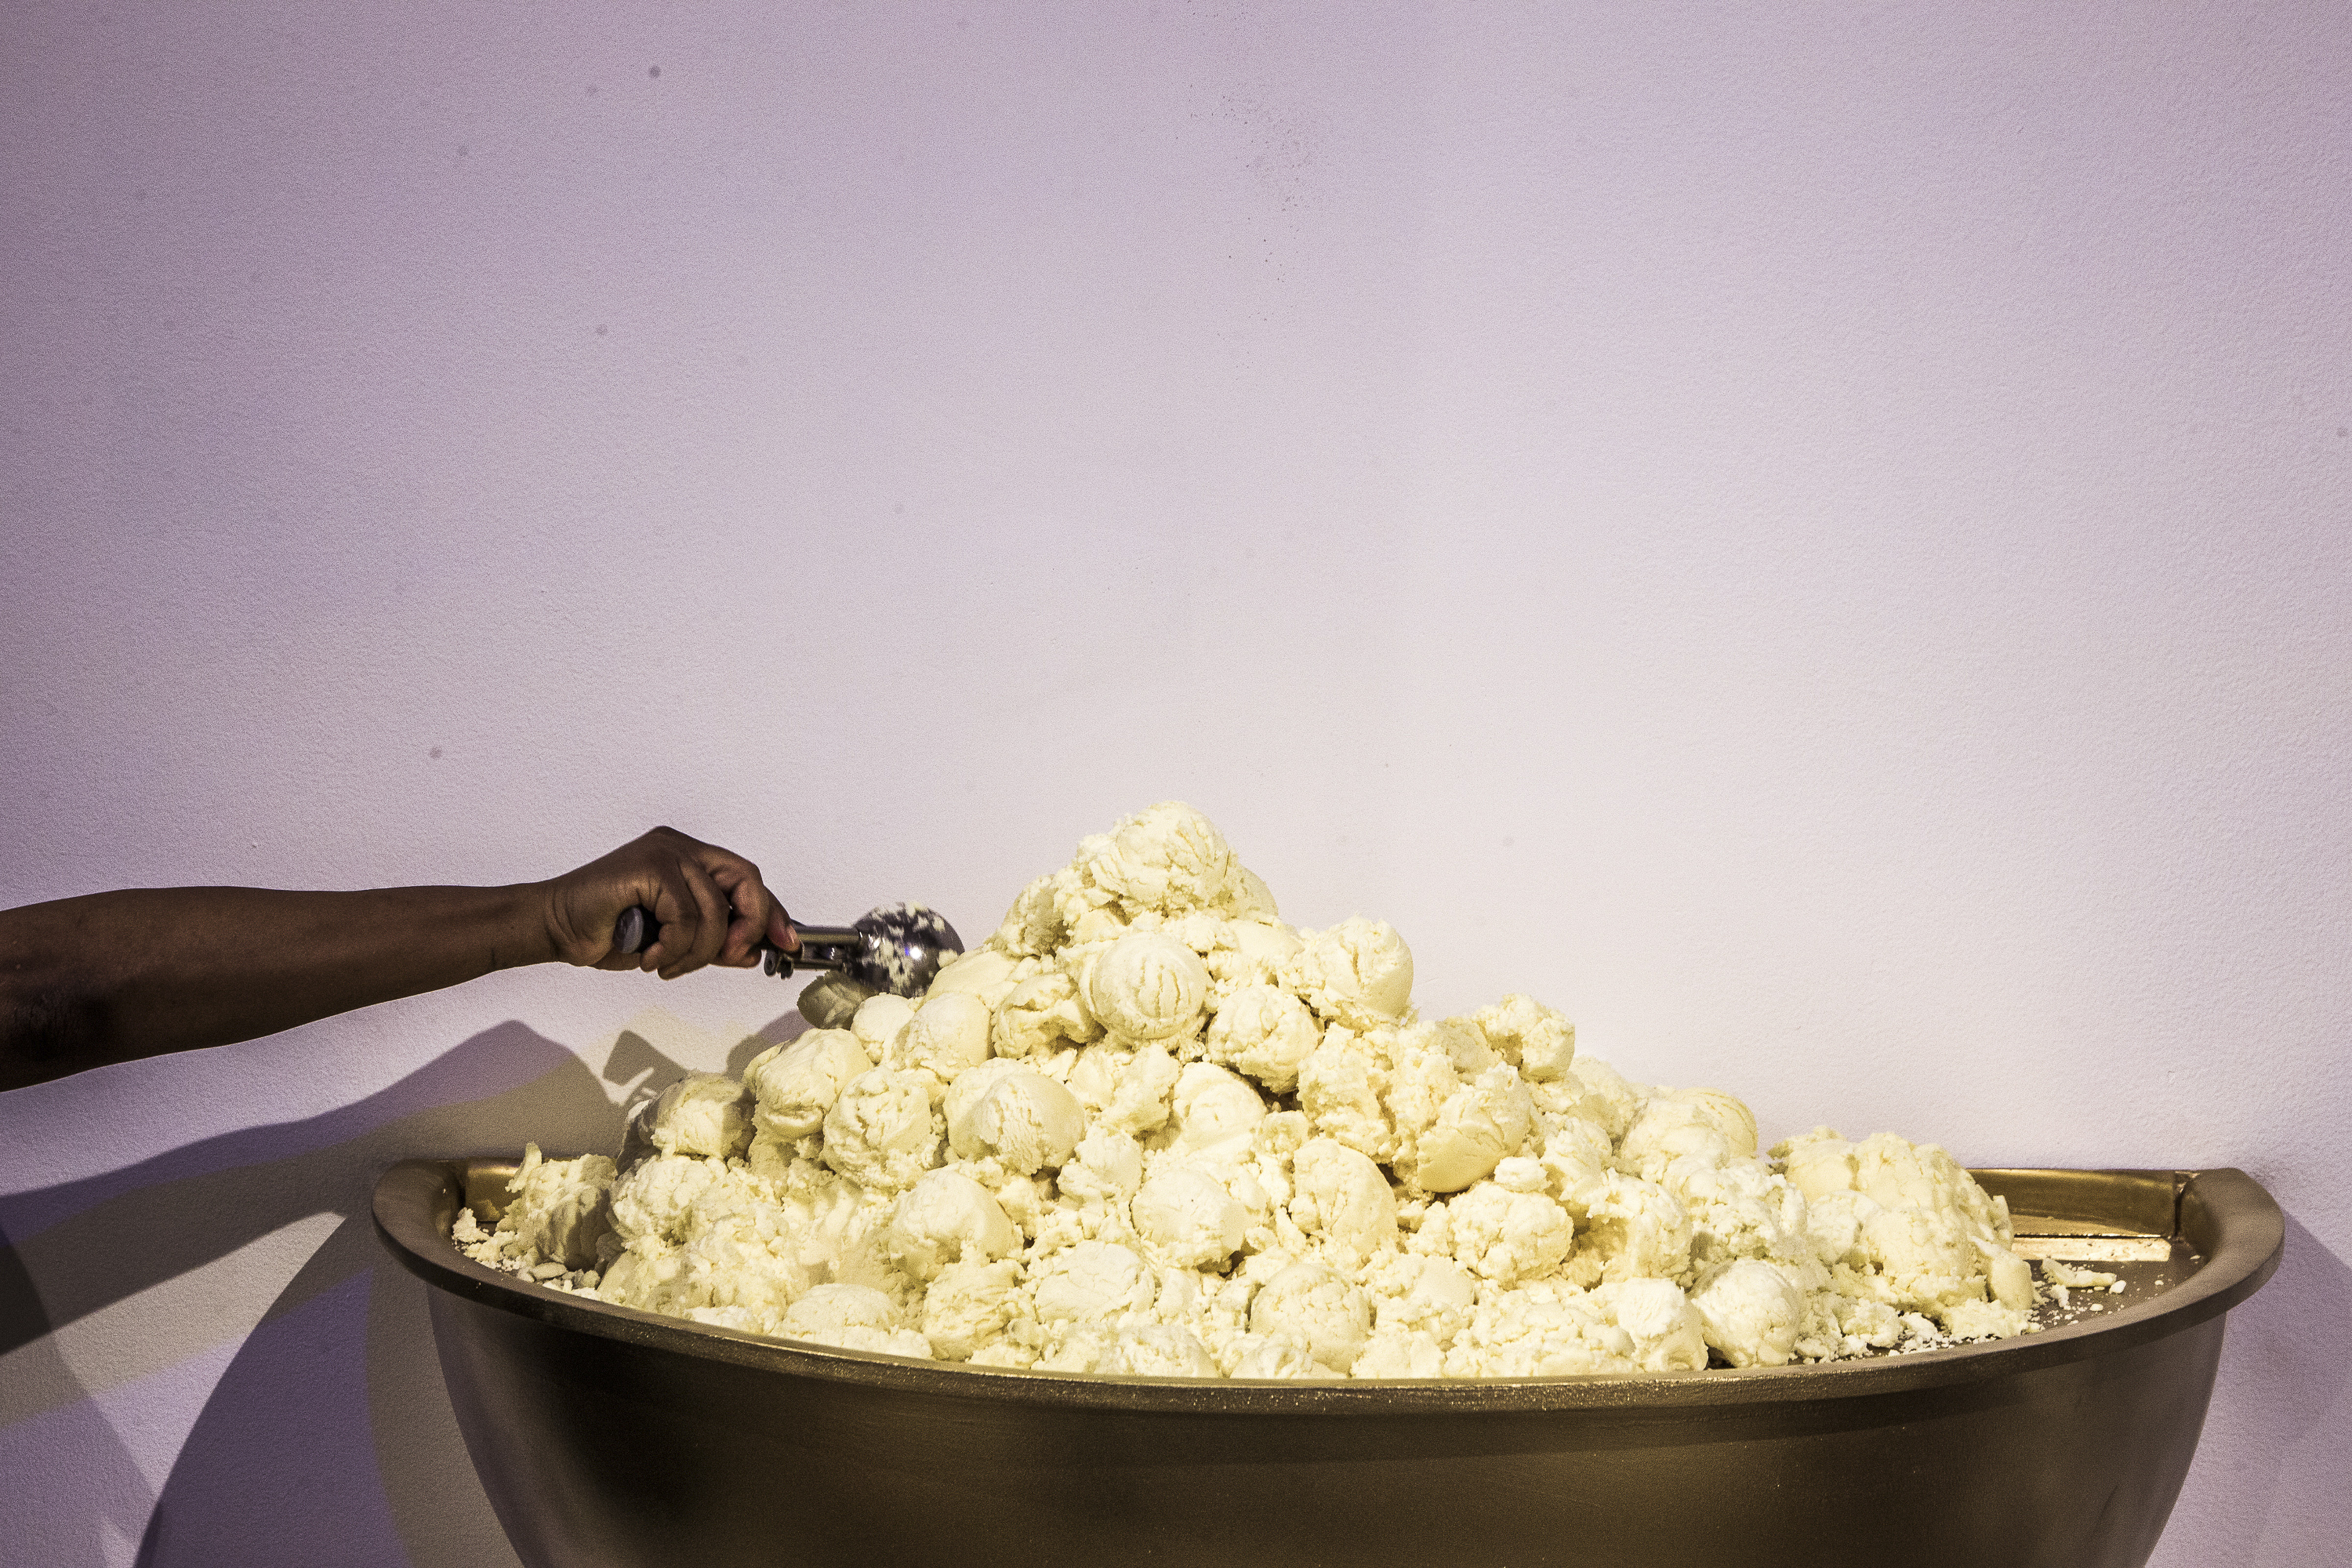 """An attendee scoops vegetable shortening laced with sugar to deposit it into """"The World's Largest Ice Cream Sundae"""" during a press preview of the Museum of Ice Cream in New York."""